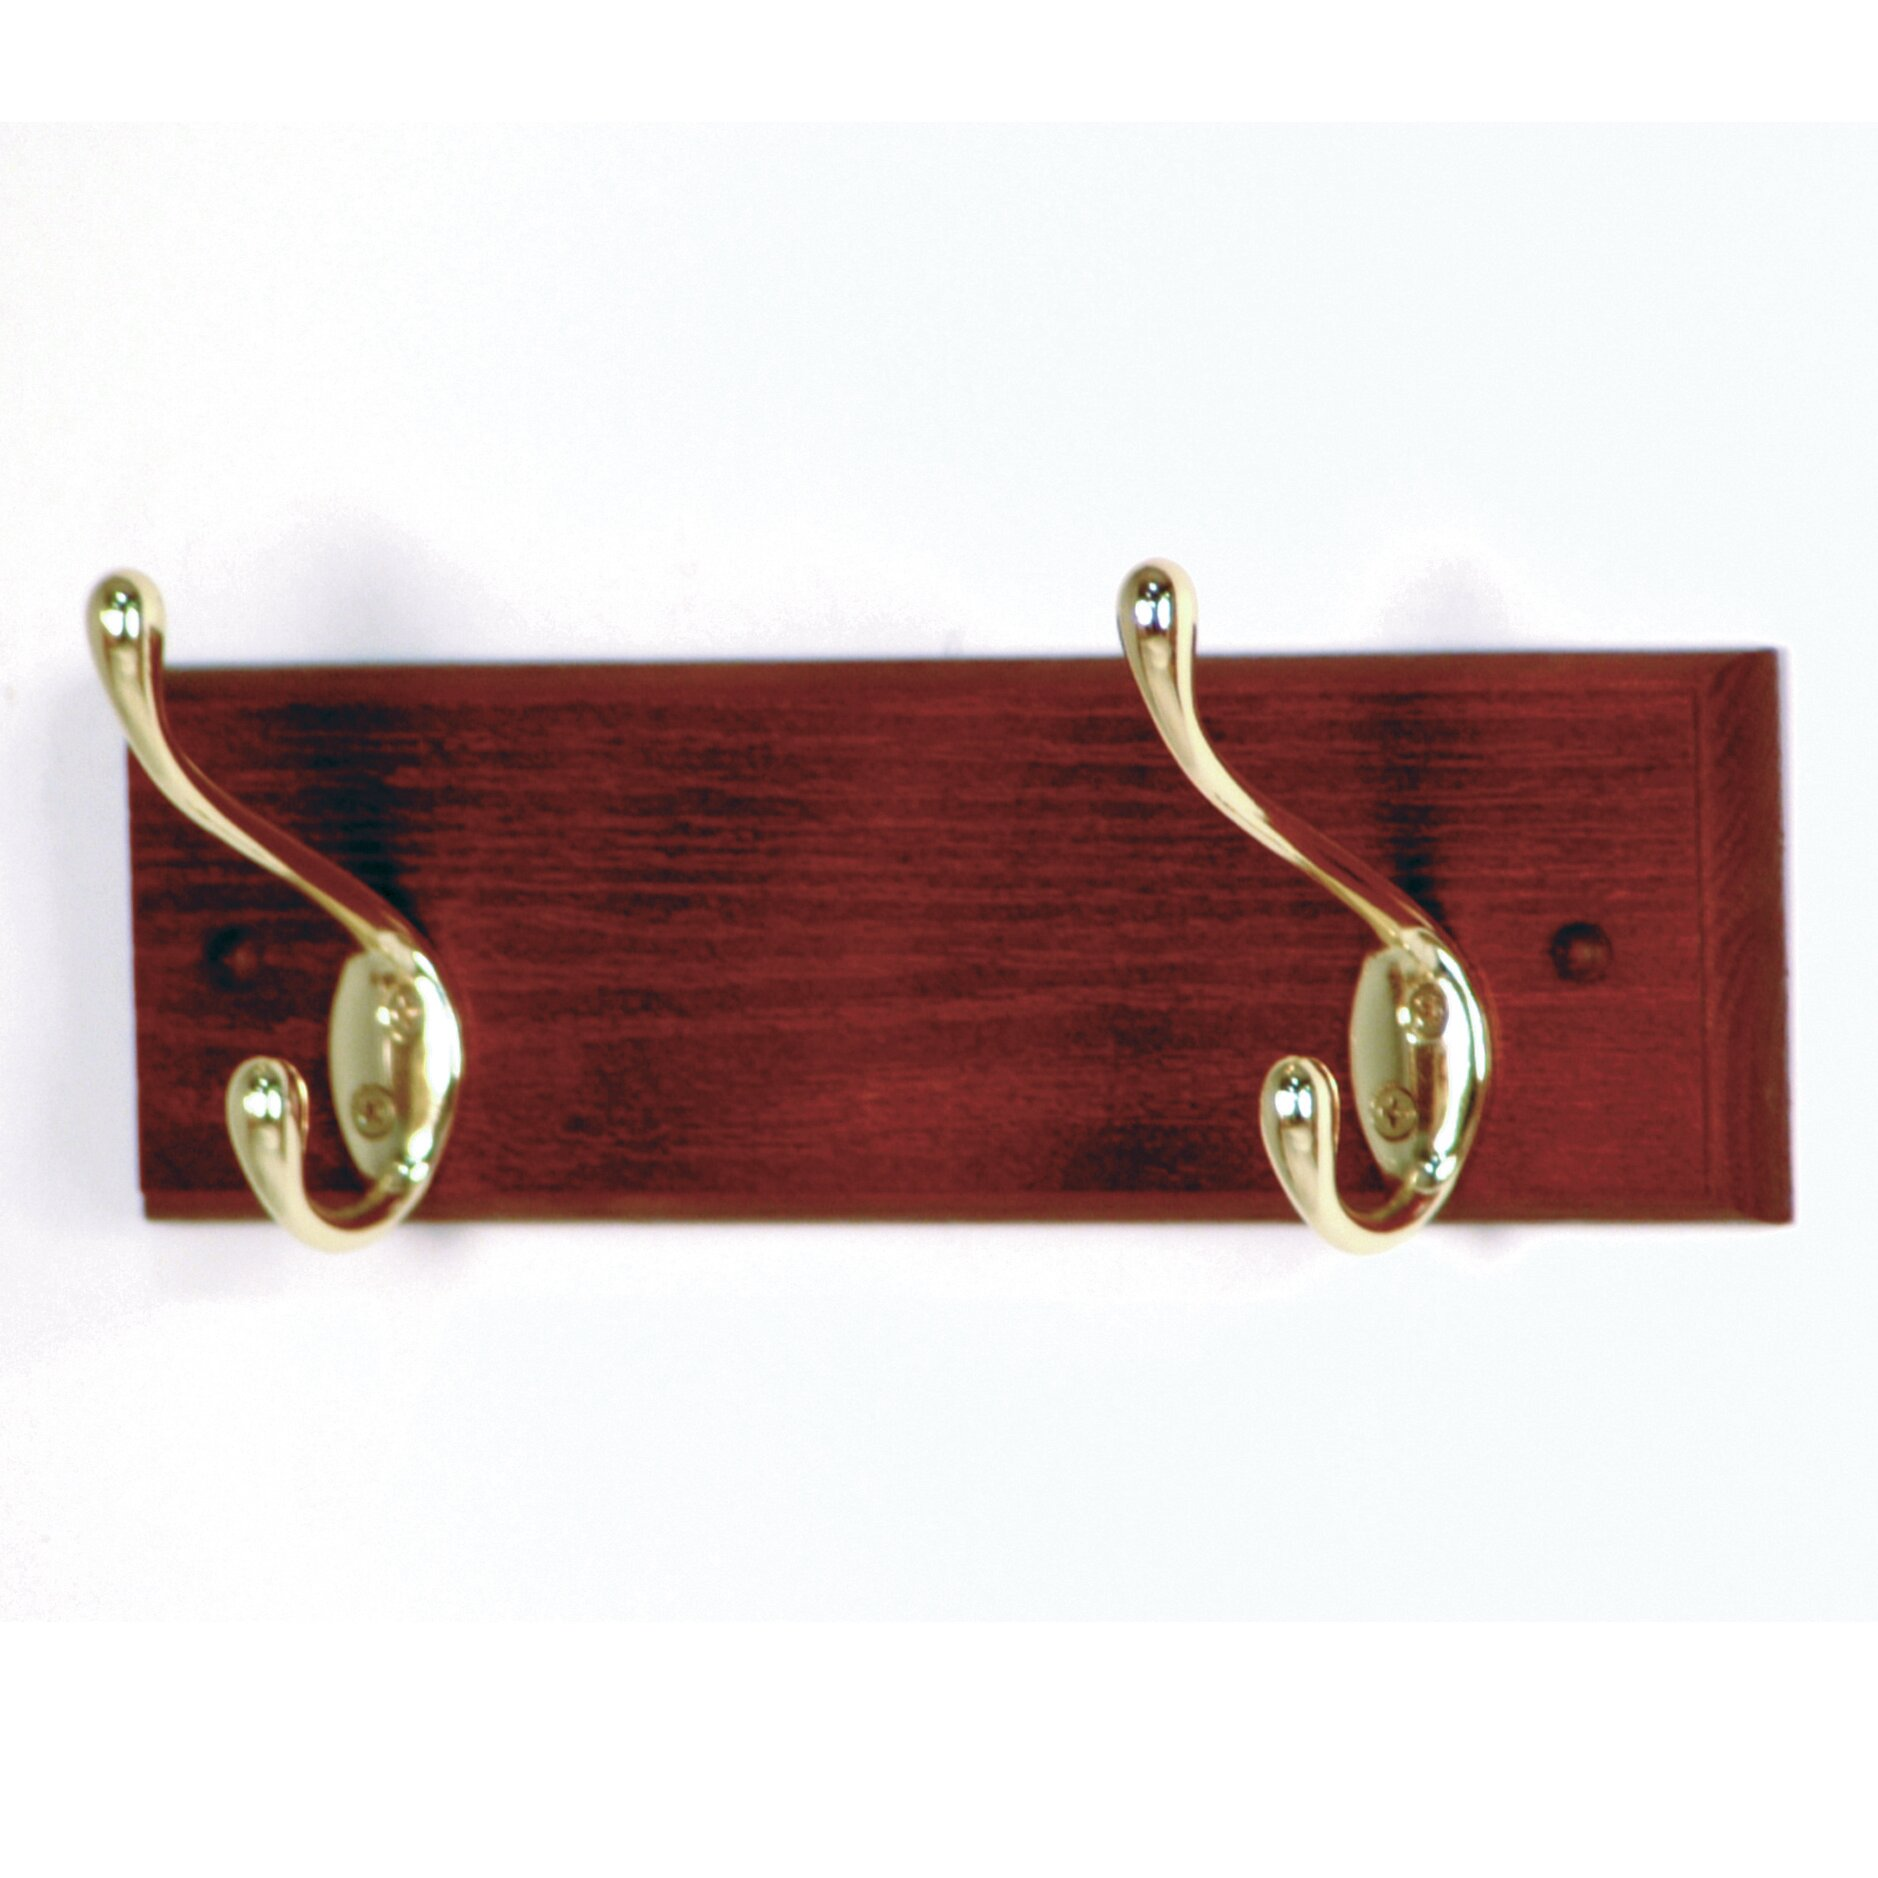 Very Impressive portraiture of Wooden Mallet Coat Rack with 2 Hooks & Reviews Wayfair with #6A2723 color and 1878x1878 pixels